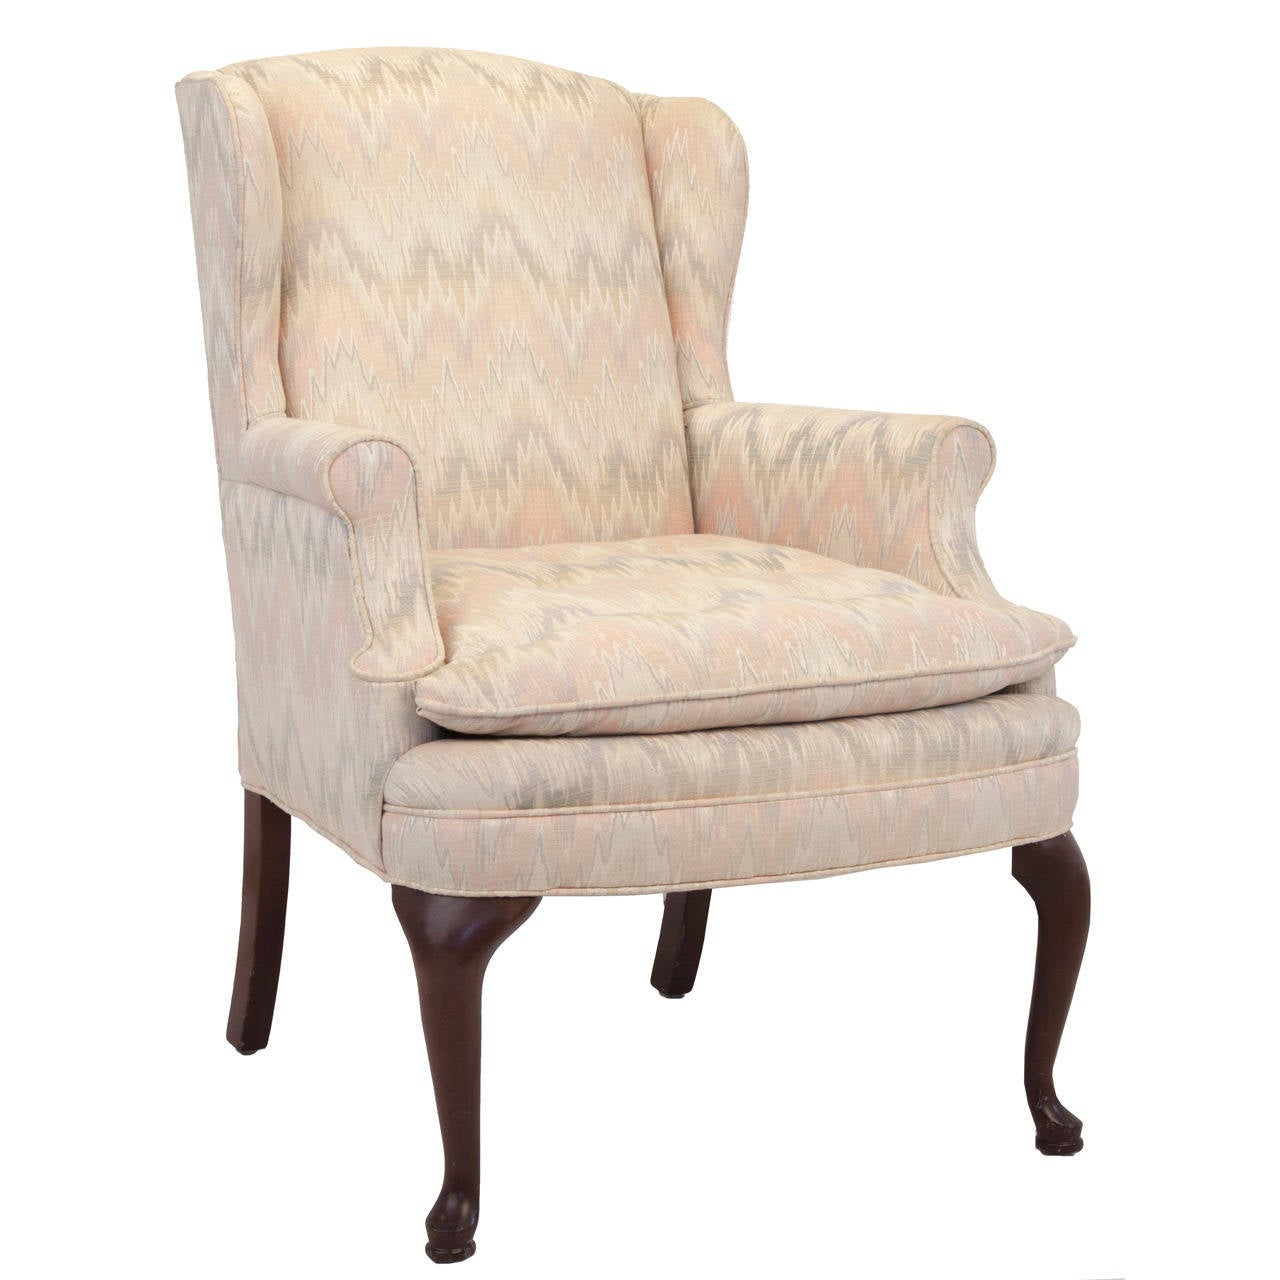 Antique Queen Anne Chairs For Sale Antique Furniture